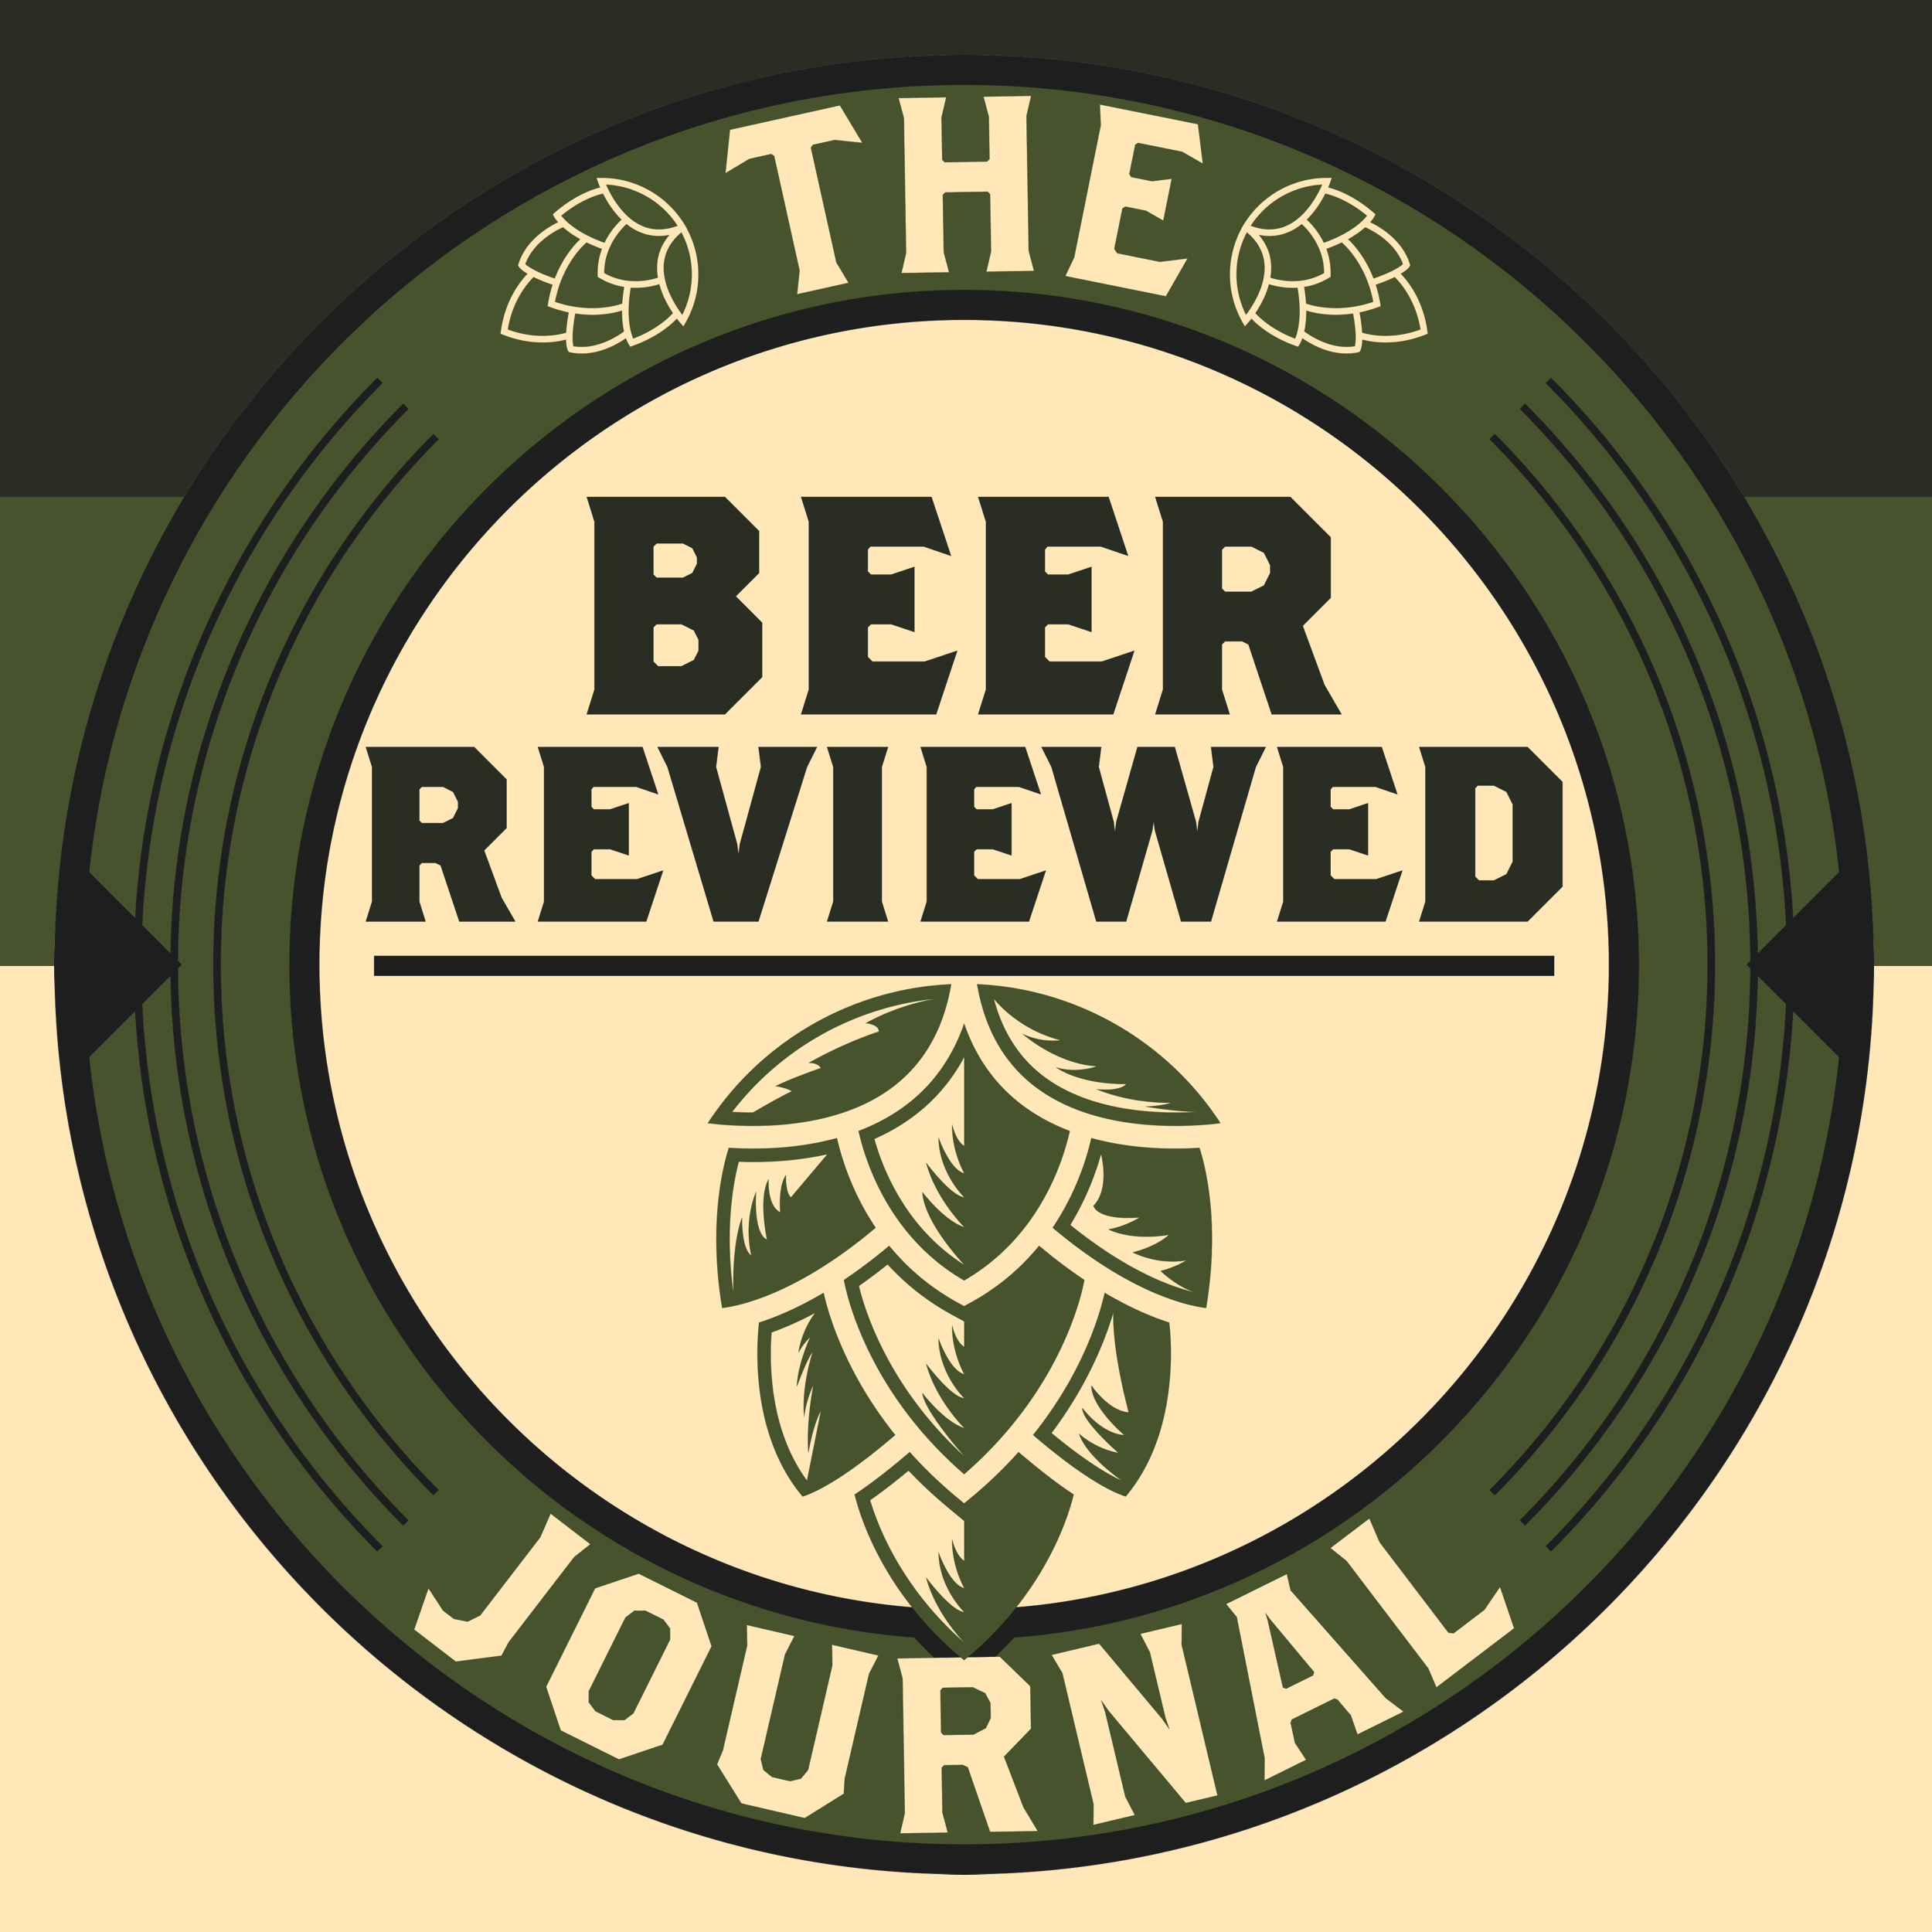 The Beer Reviewed Journal